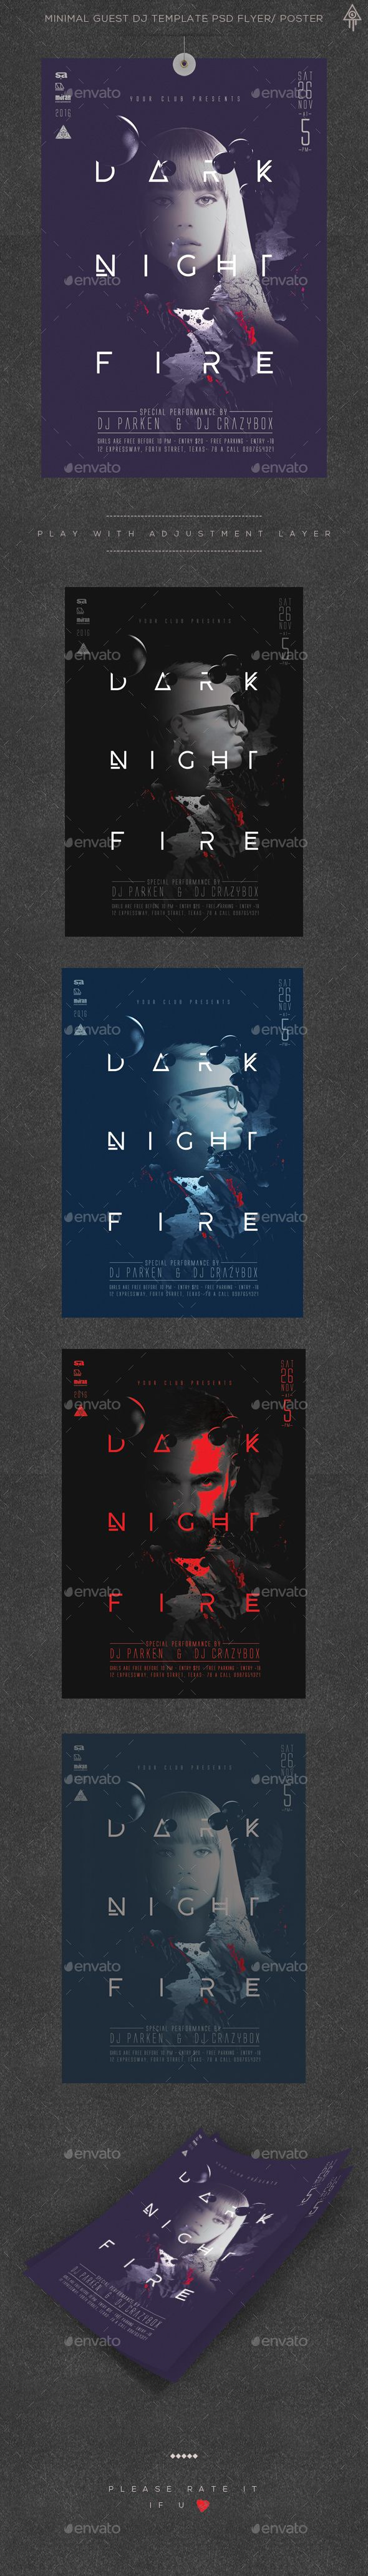 Minimal Dark Night Guest Dj Poster / Flyer Template PSD. Download here: http://graphicriver.net/item/minimal-dark-night-guest-dj-poster-flyer/14785357?ref=ksioks